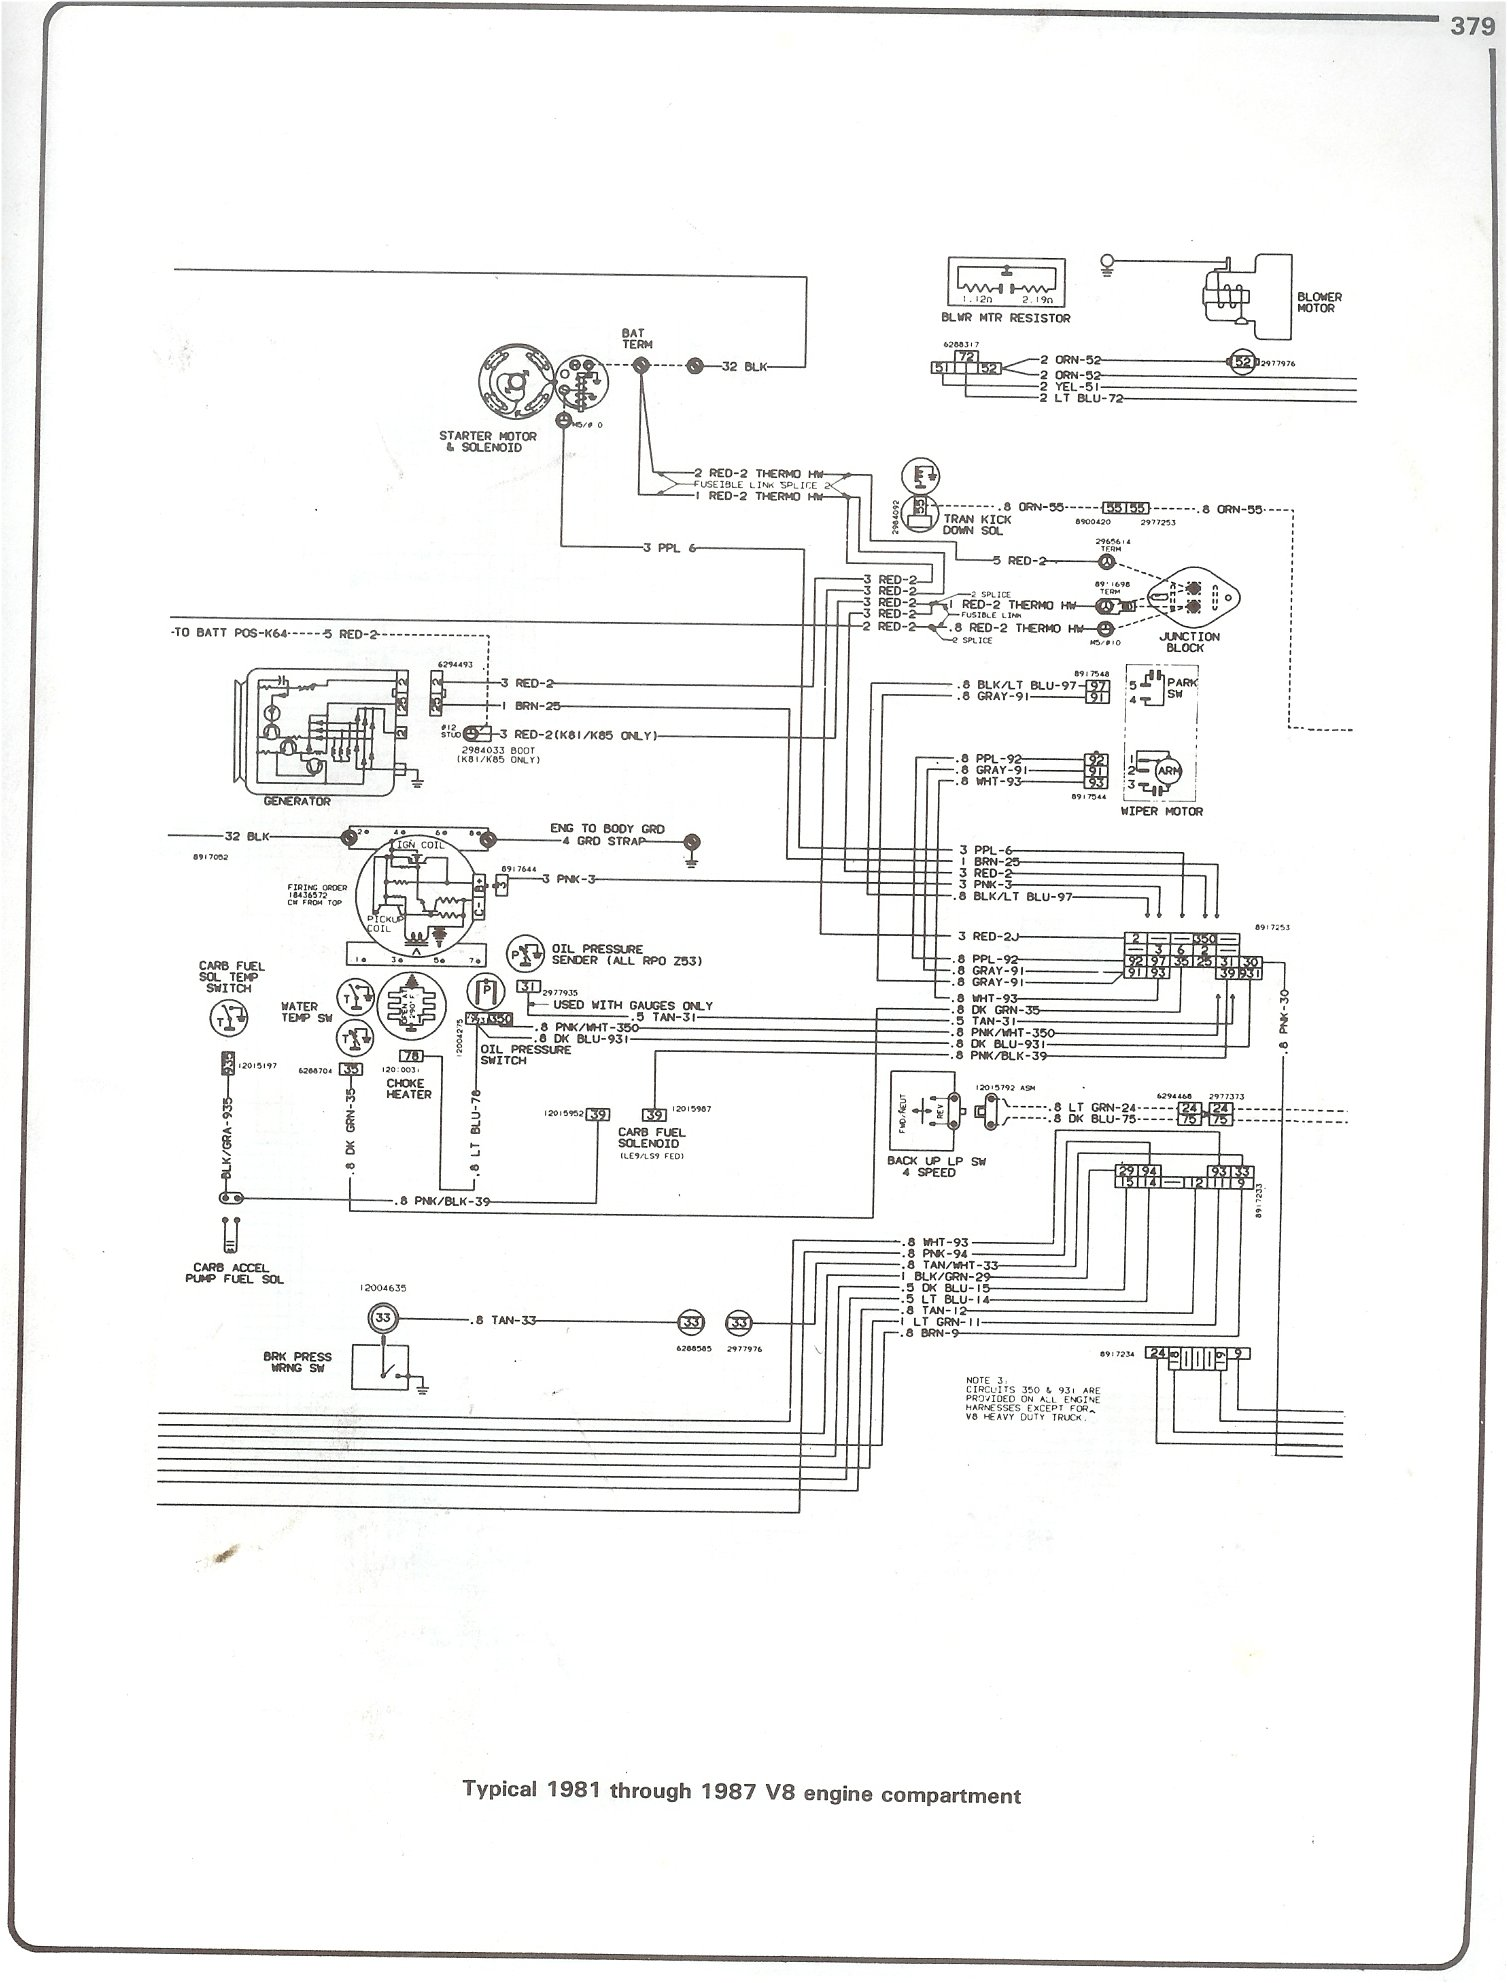 hight resolution of 1984 suburban wiring diagram wiring diagrams one 1997 suburban wiring diagram 1984 suburban wiring diagram